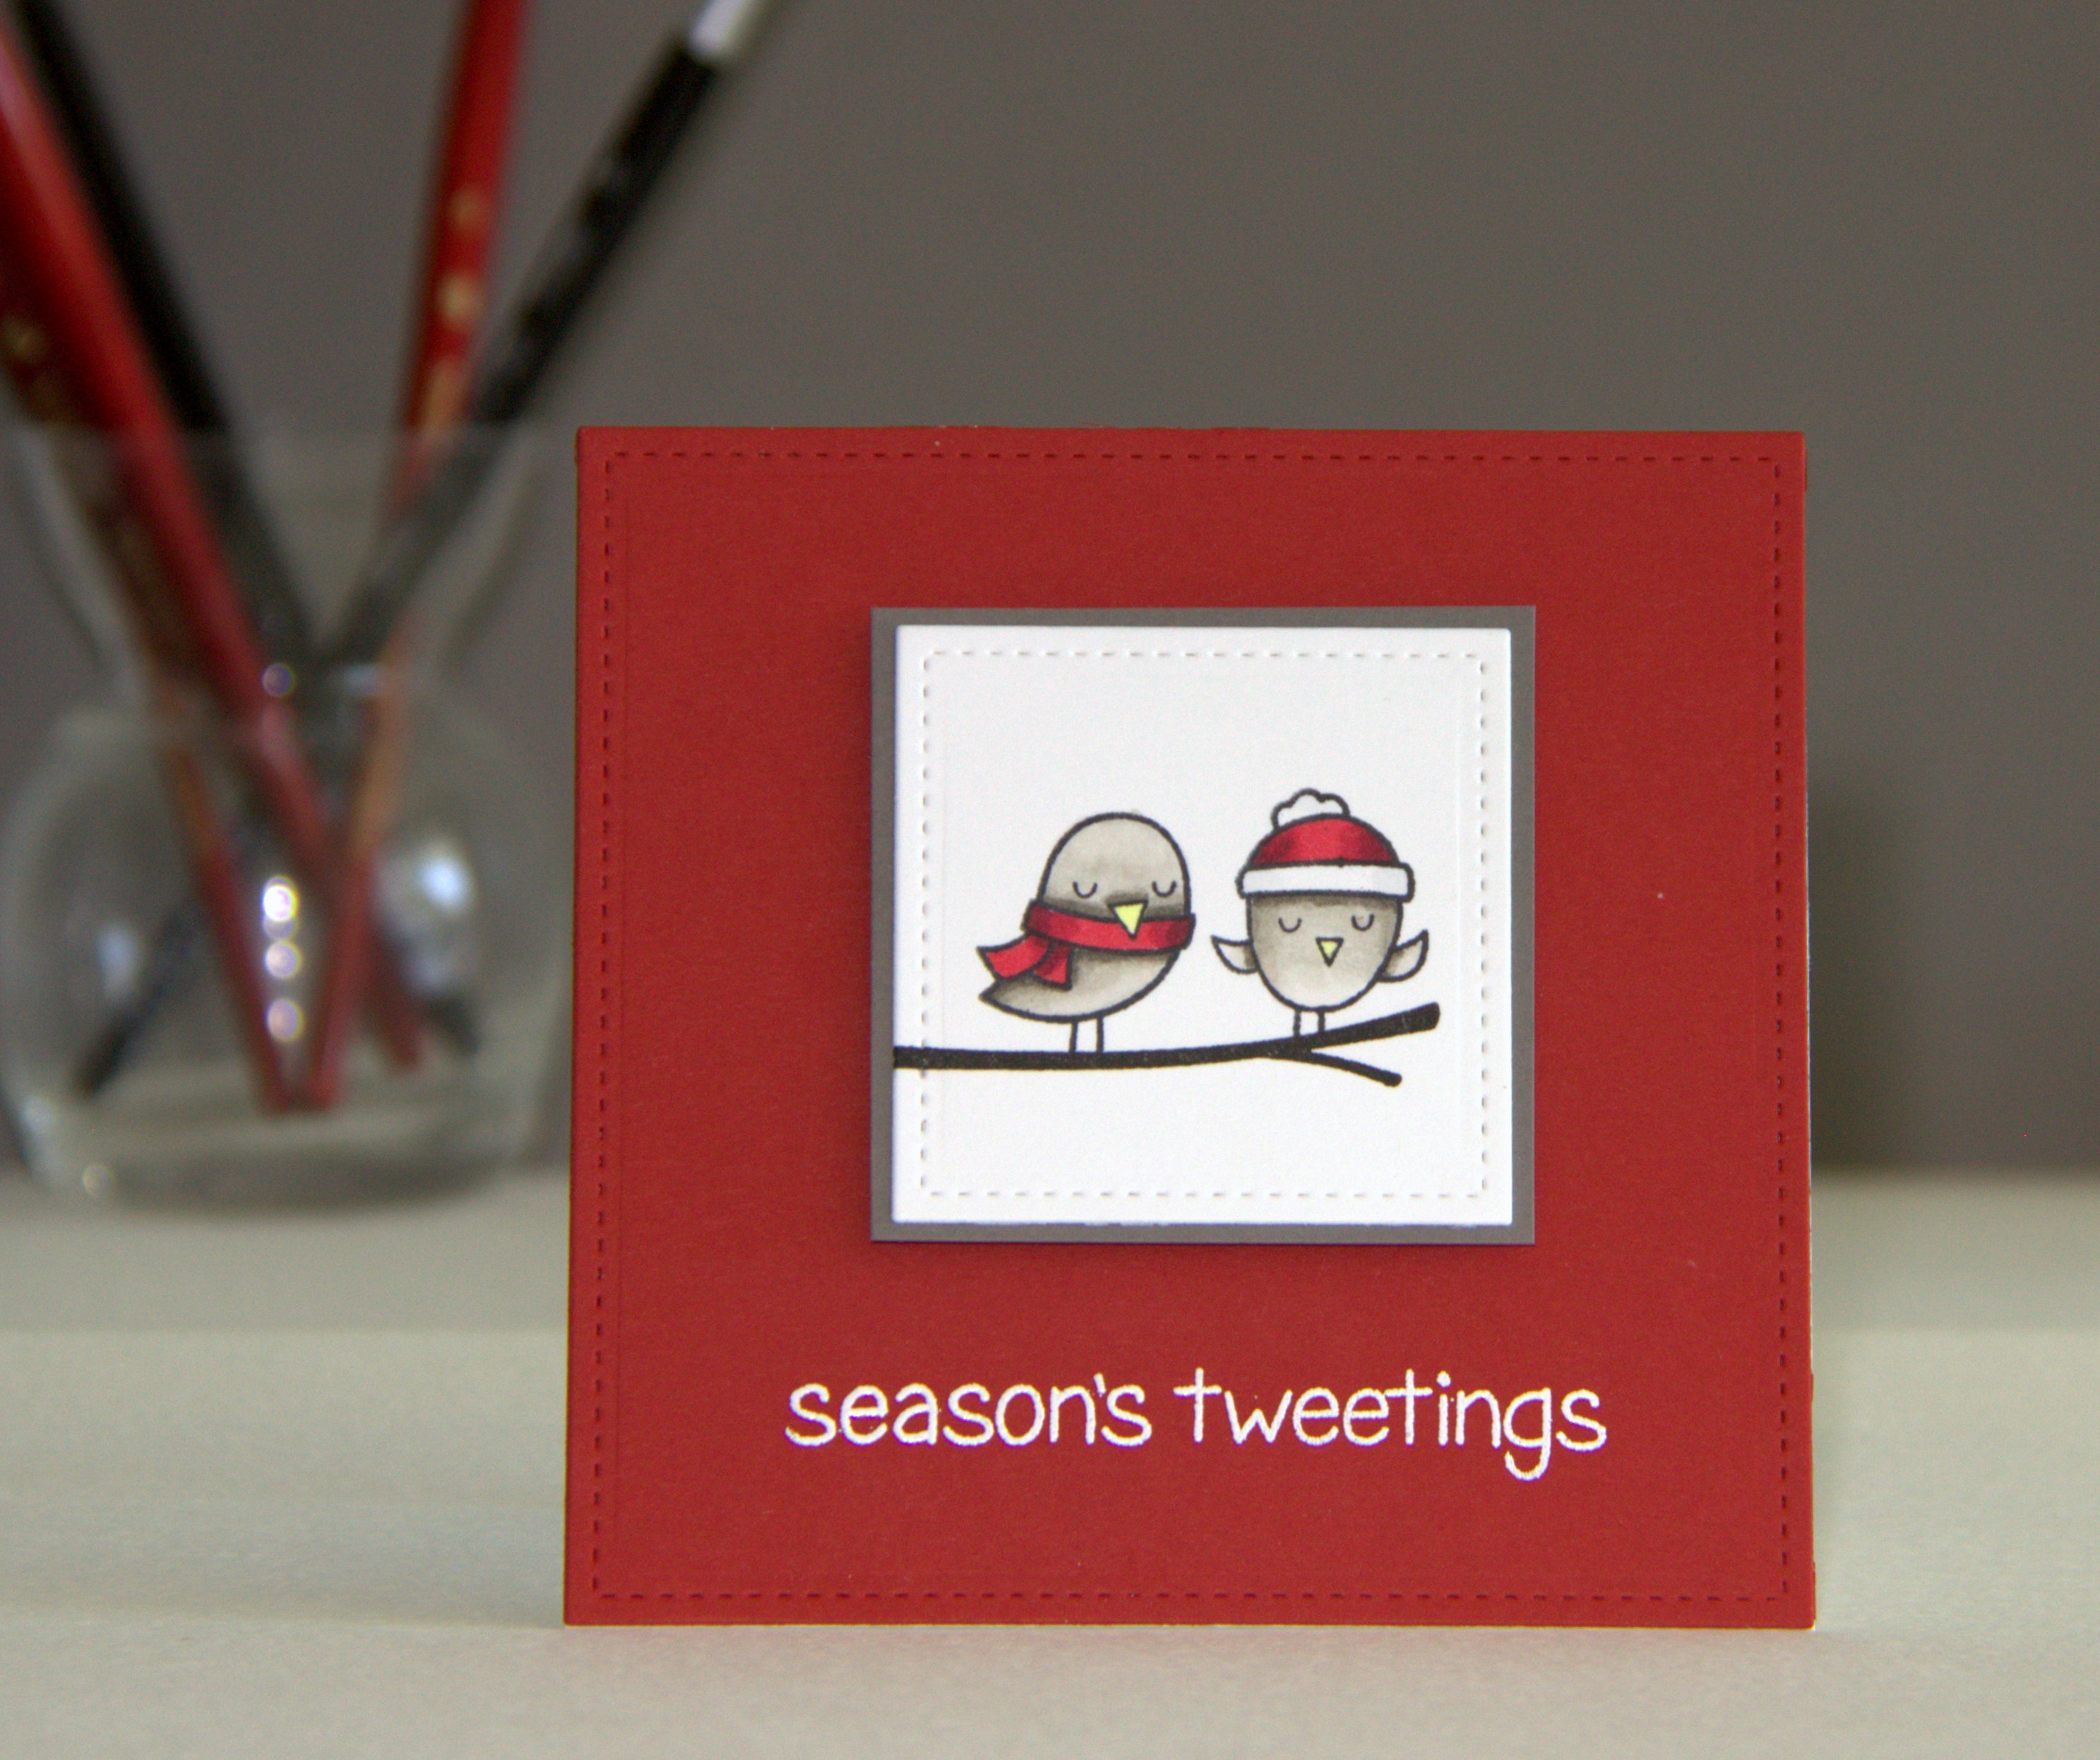 Example image of Season's Tweetings